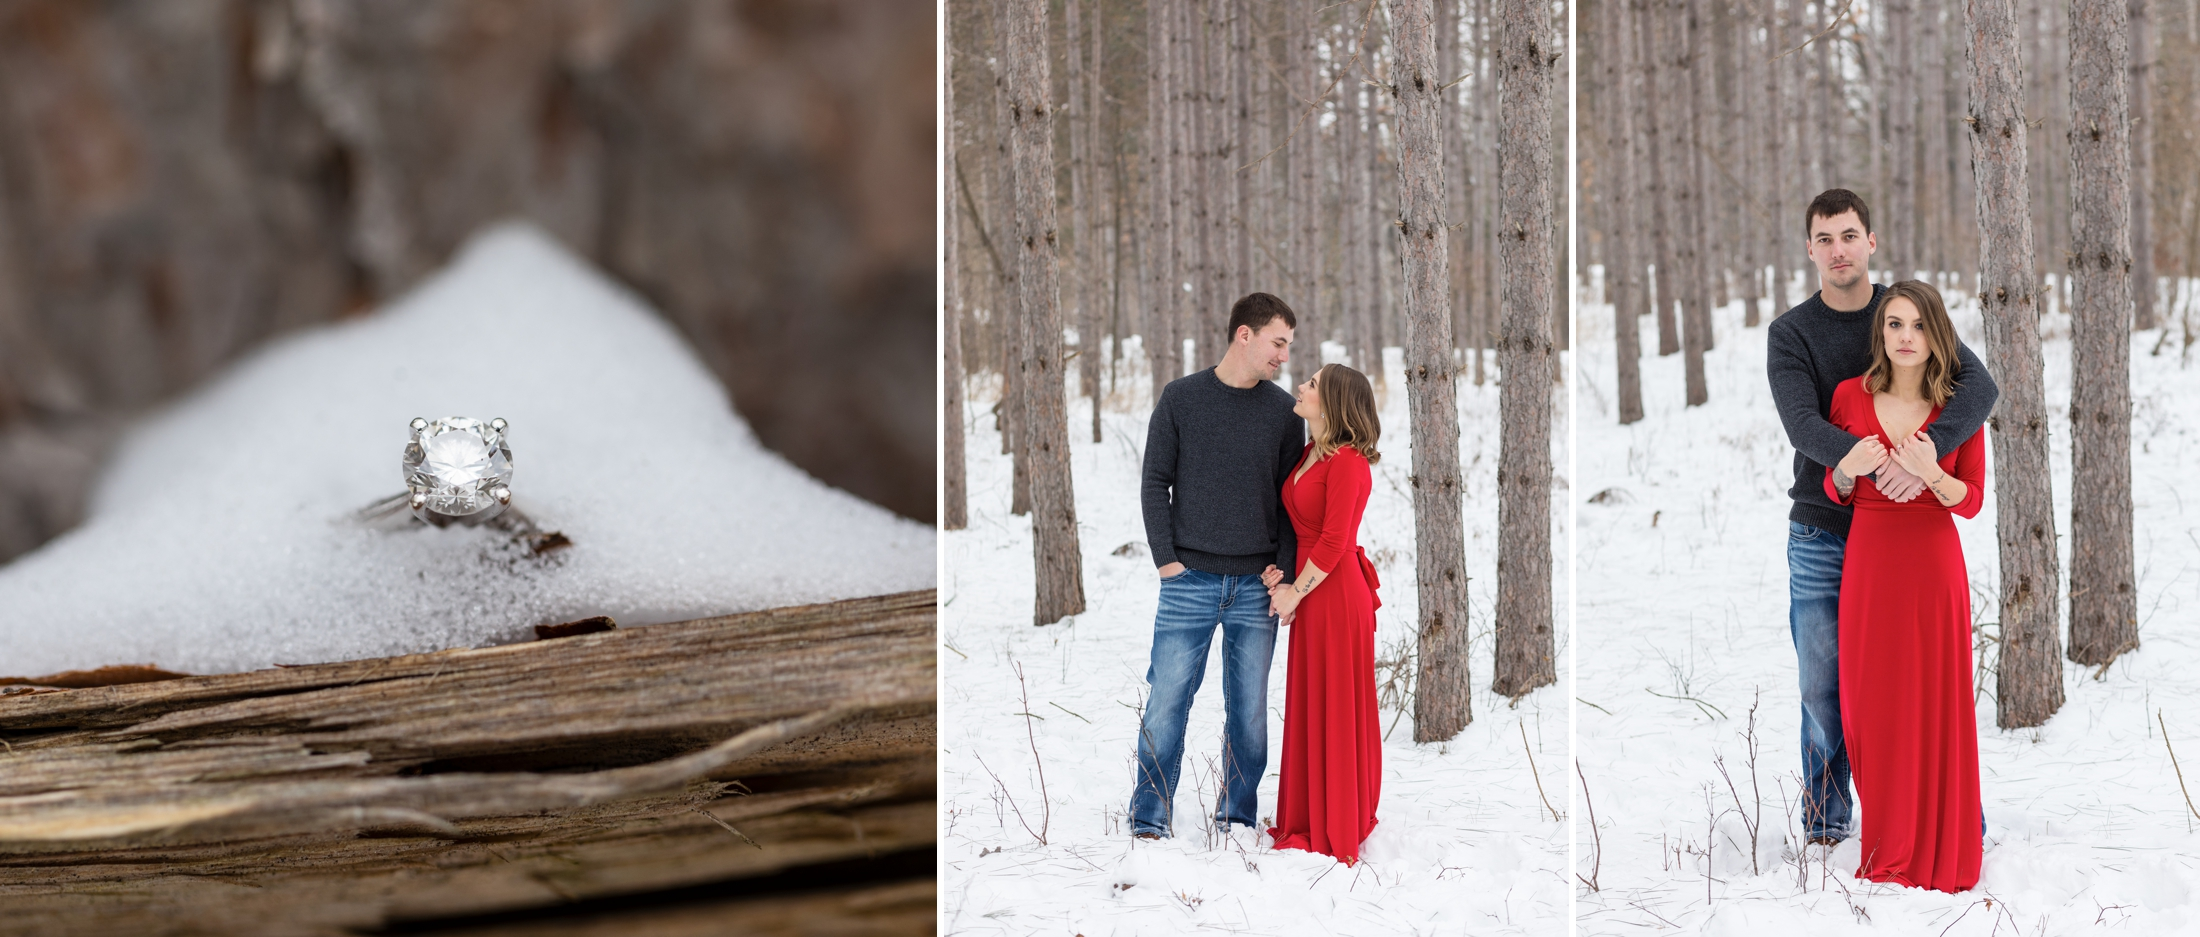 Wisconsin Winter Engagement Session | KLEM Studios Wedding, Boudoir & Branding Photography